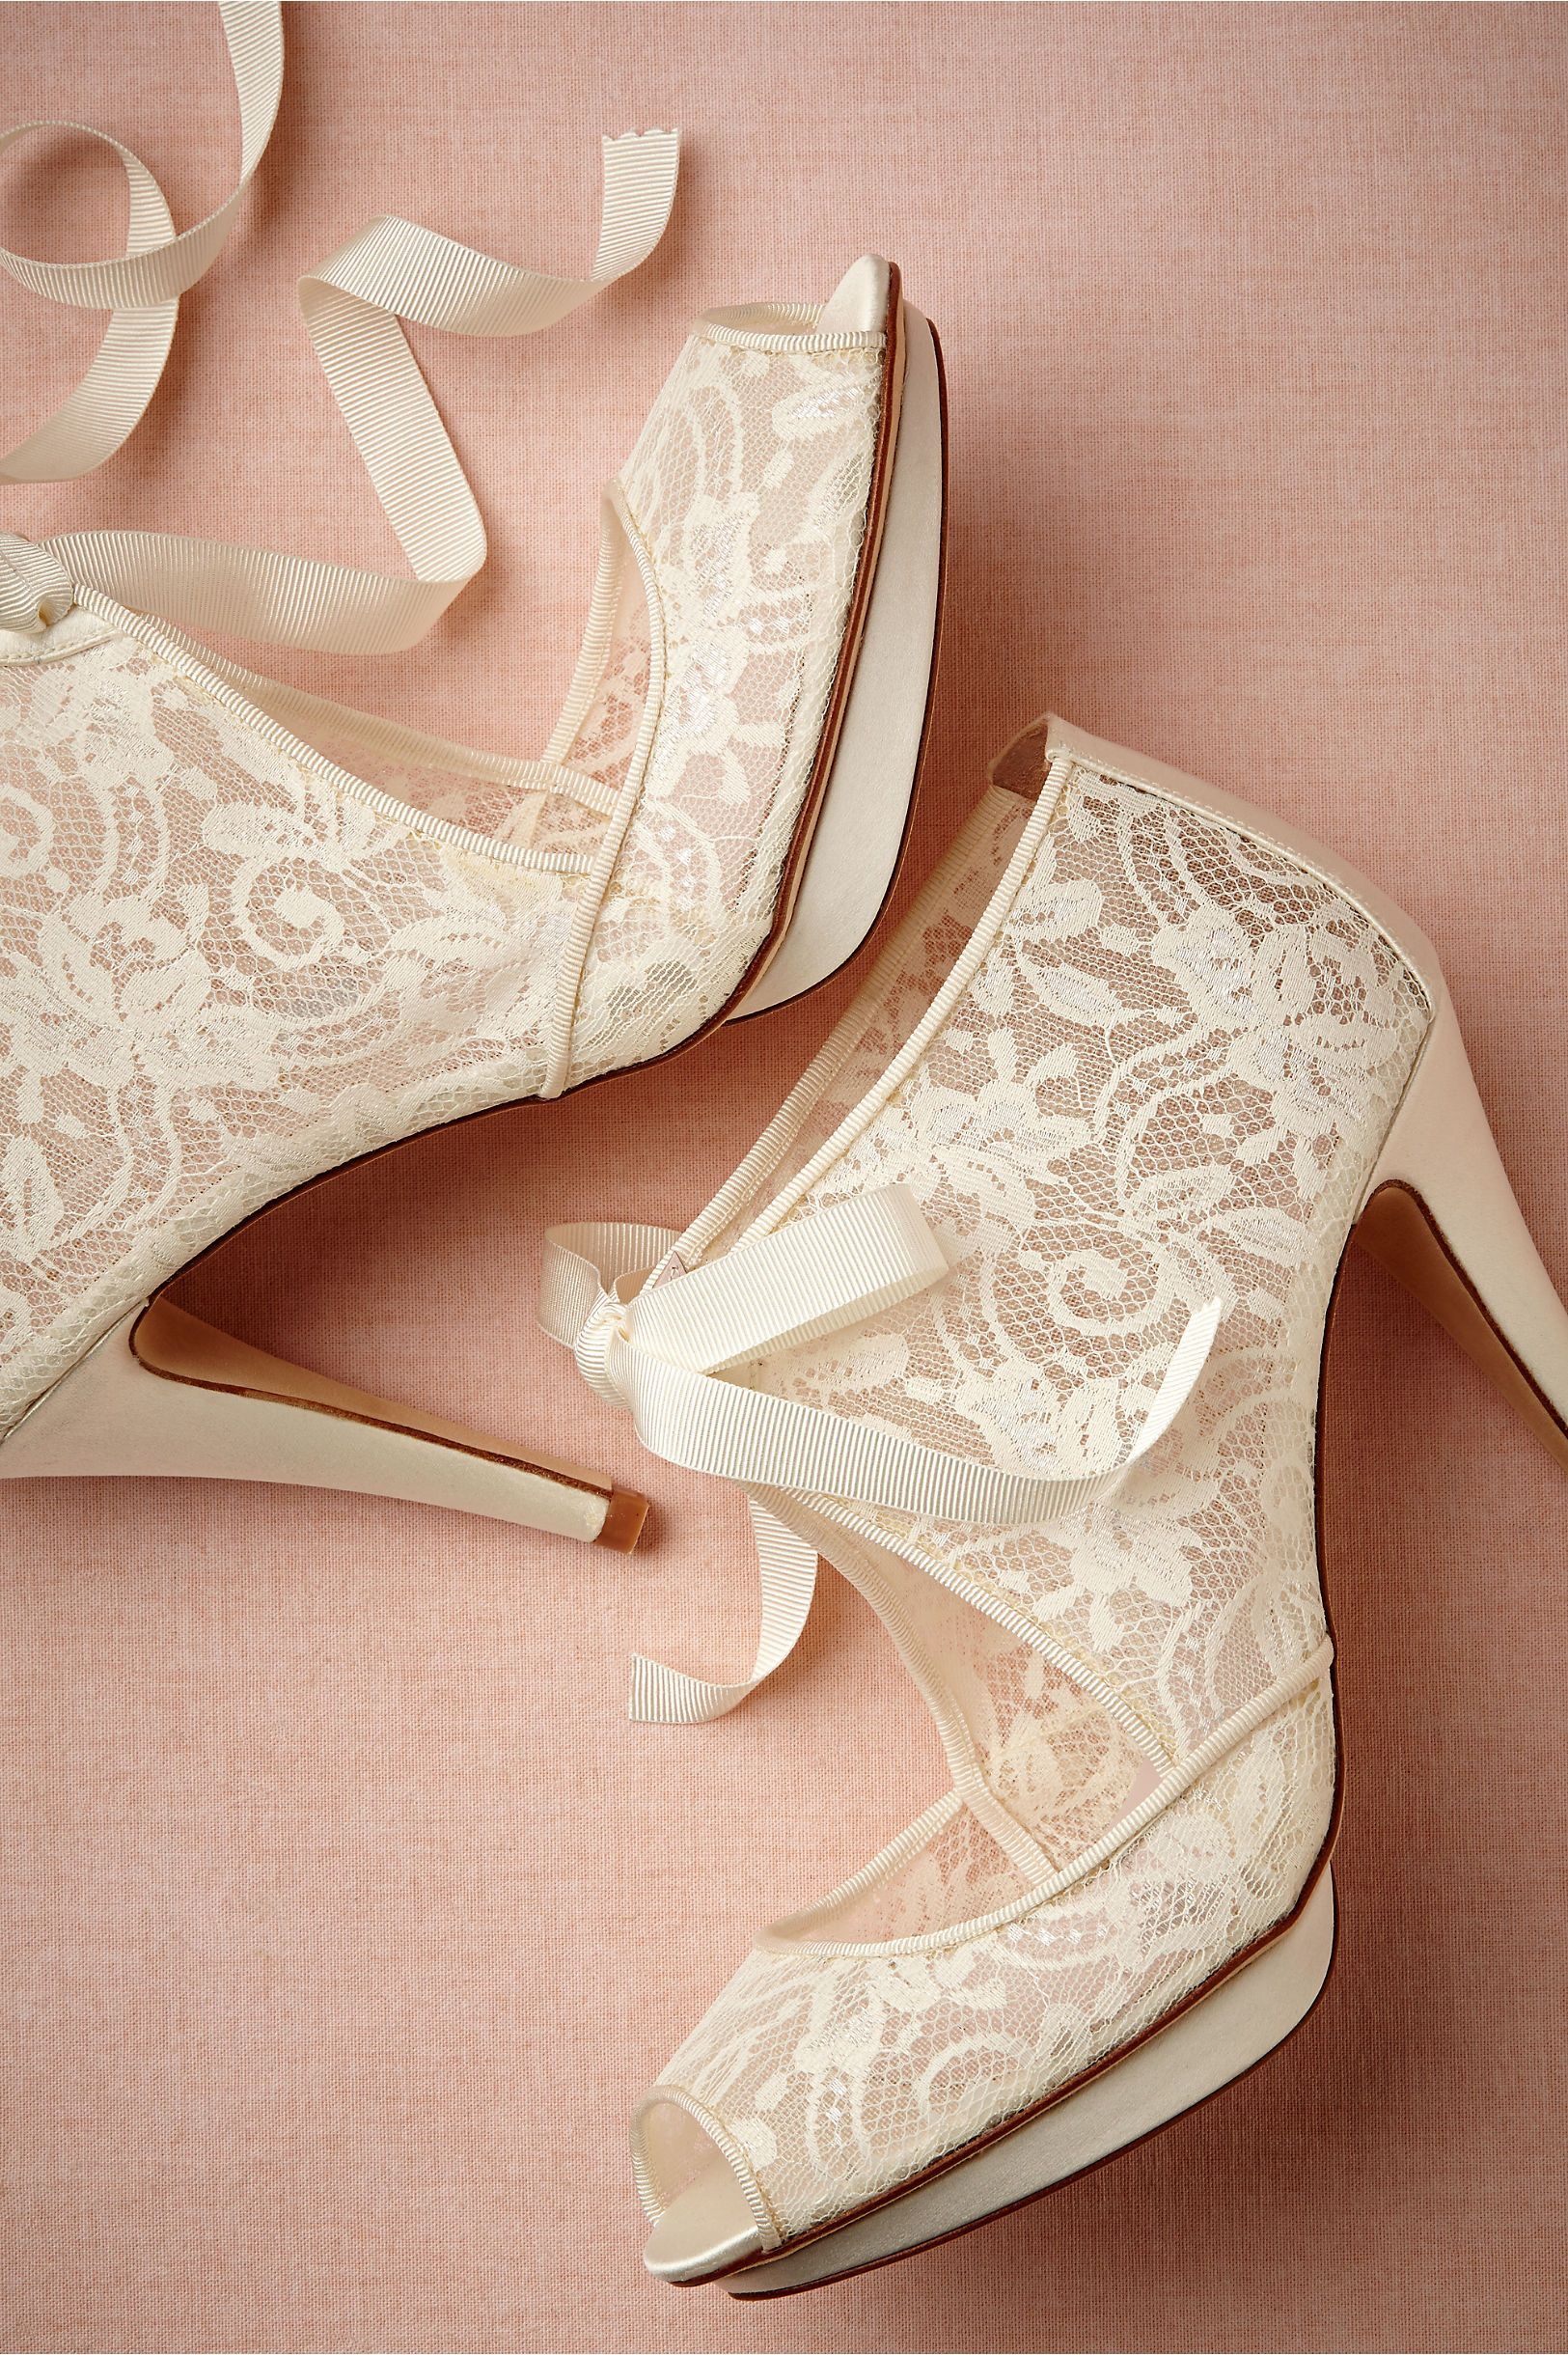 Girls wedding dress shoes  Chantilly Booties in Bride Bridal Shoes at BHLDN  Shoes  Pinterest